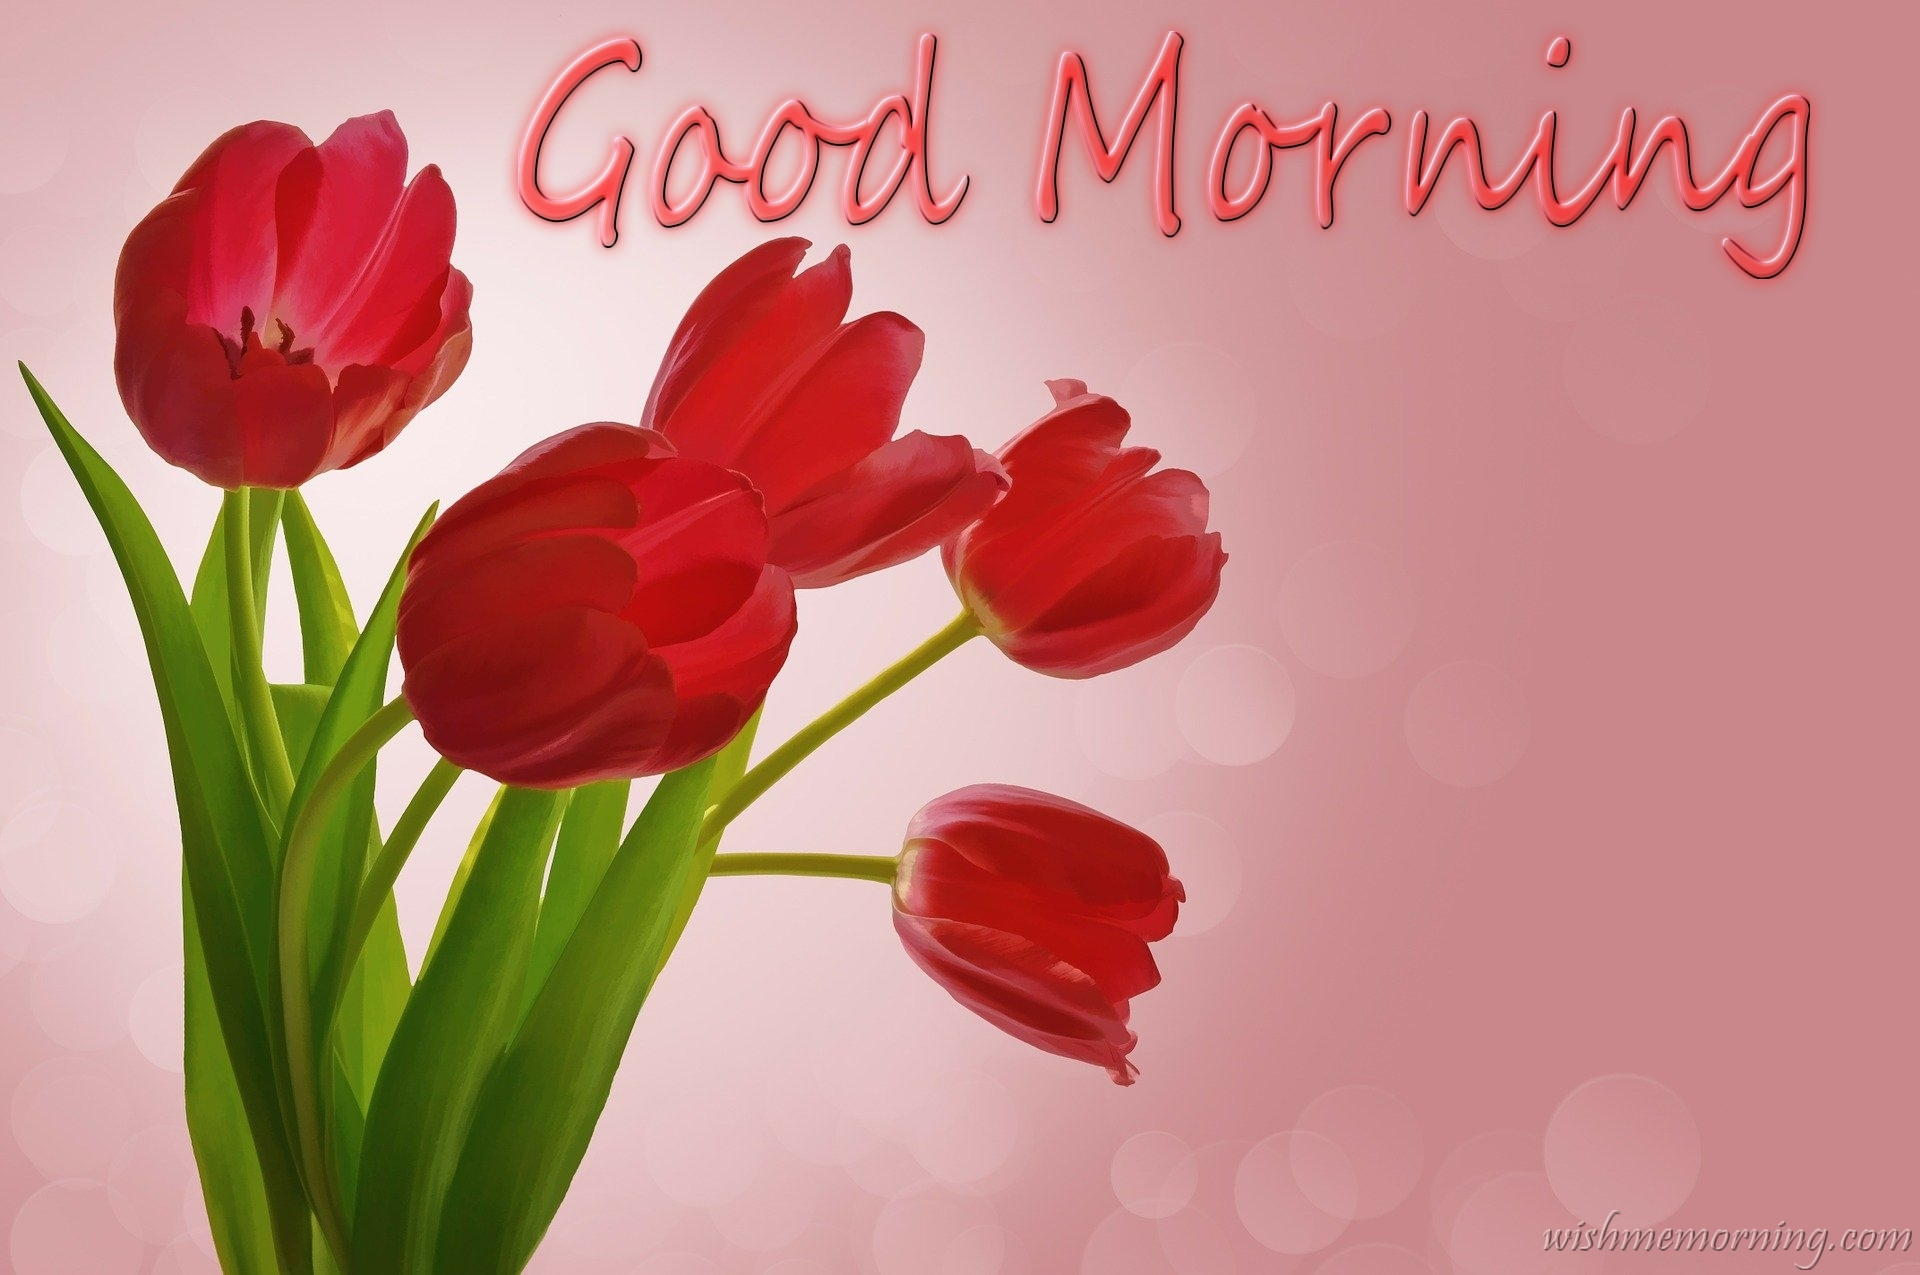 Five Red Tulip Flowers Good Morning Wish